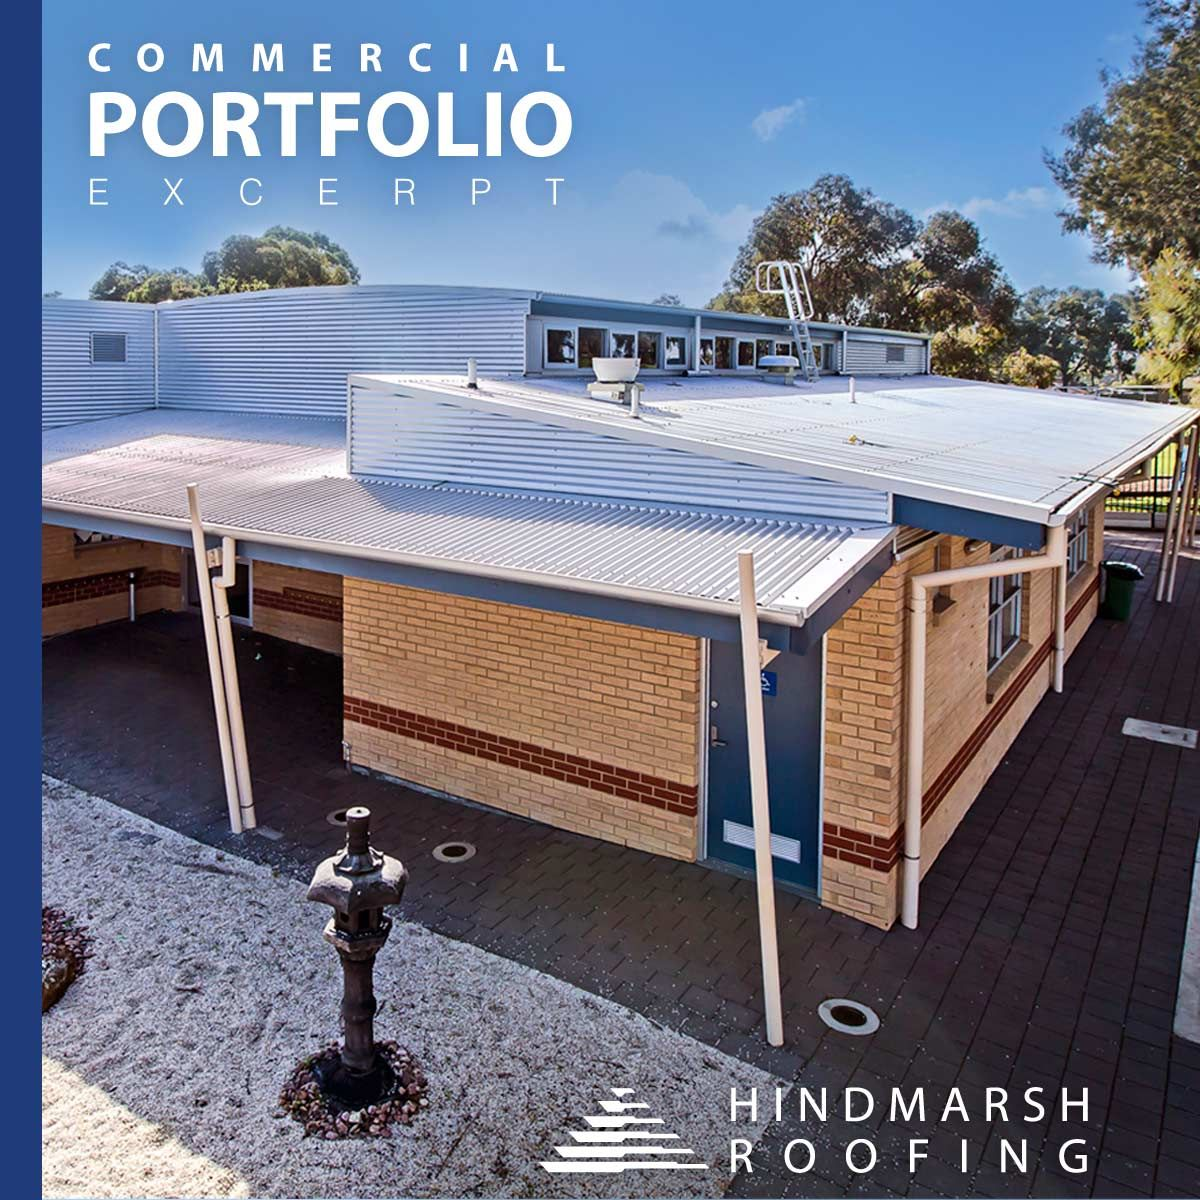 High Quality Hindmarsh Roofing   Domestic, Commercial U0026 Industrial Metal Roofing  Specialists Servicing Metropolitan Adelaide U0026